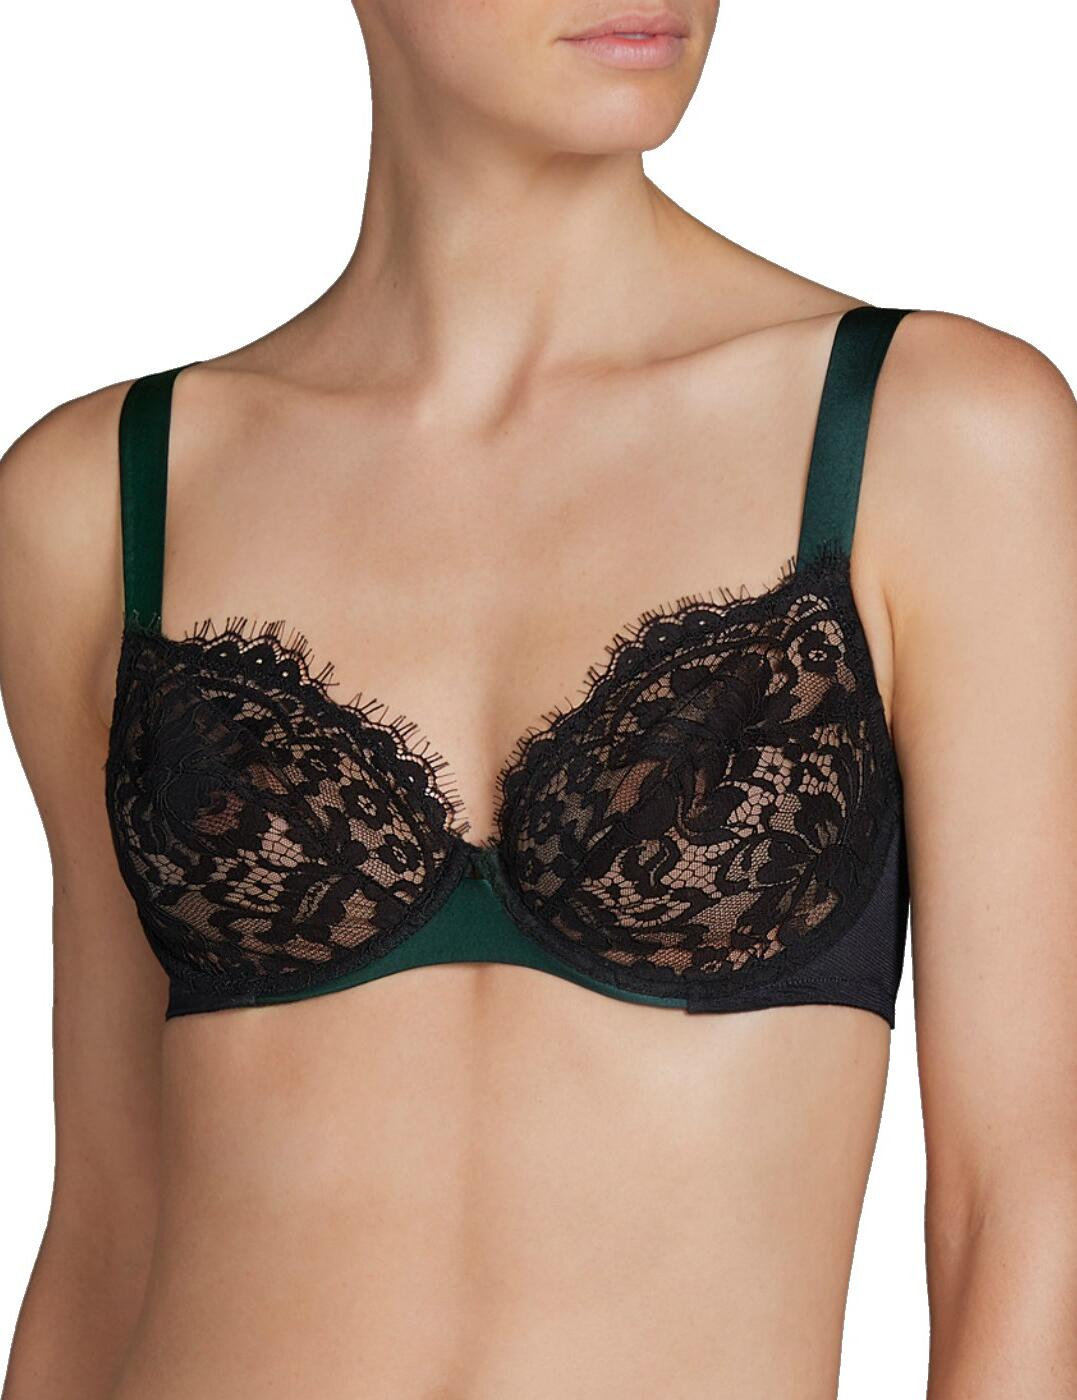 3308011 Andres Sarda Megeve Full Cup Bra - 3308011 Black